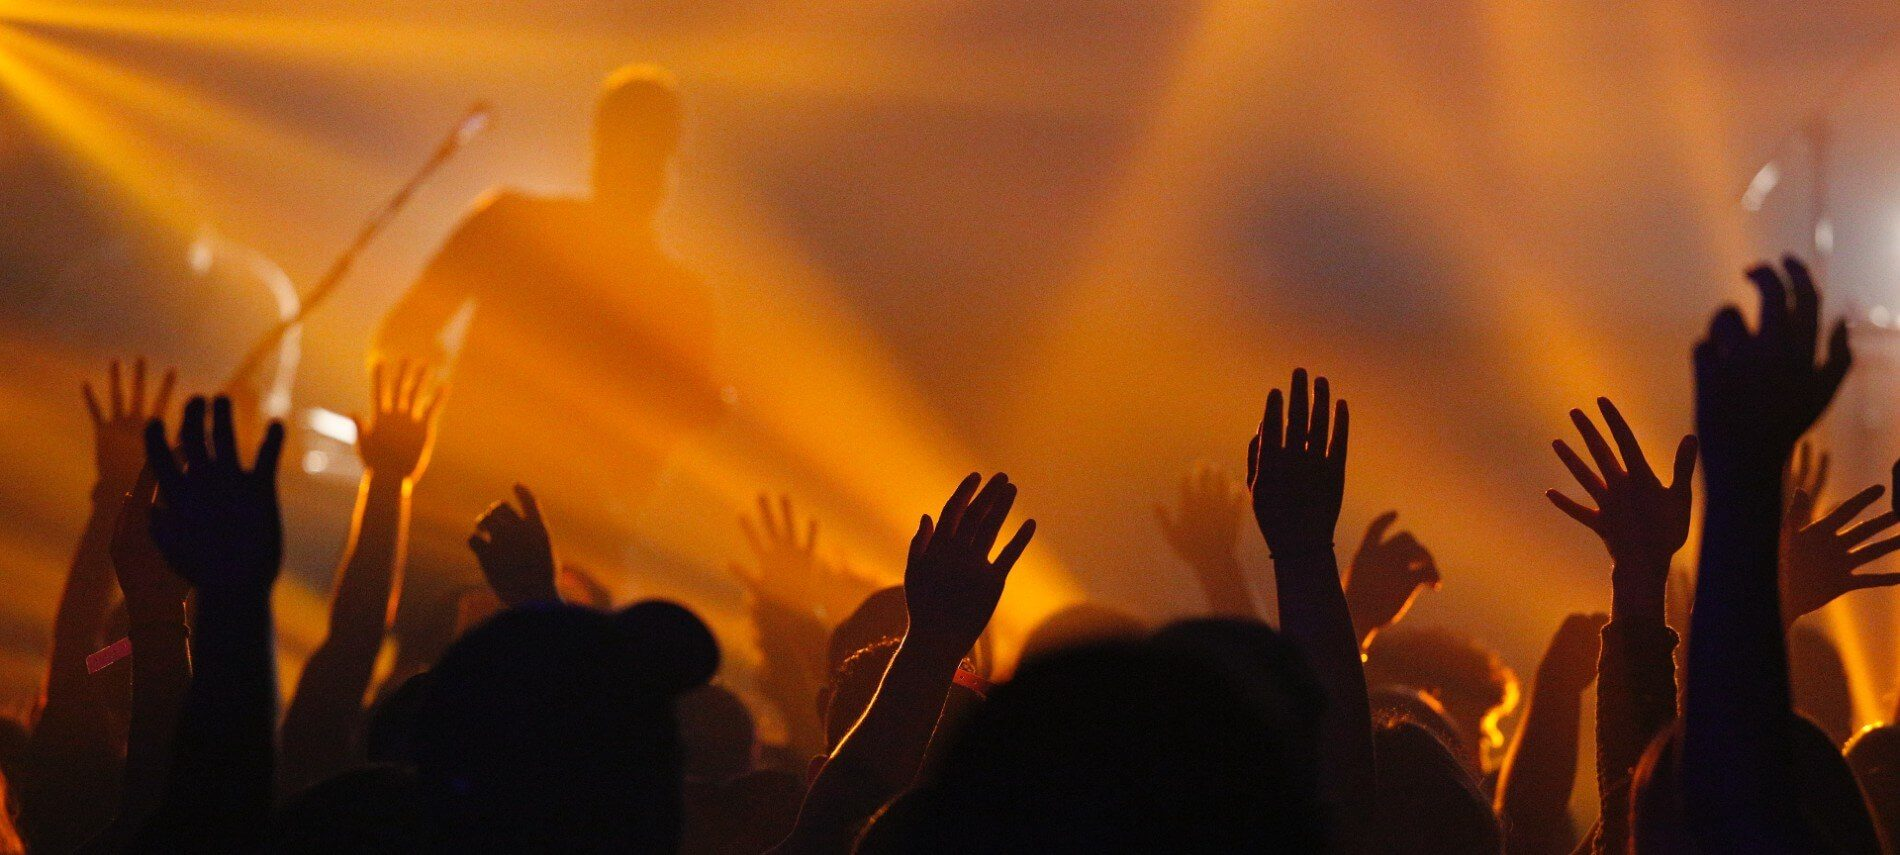 A crowd of people with hands raised in front of a stage with orange lightings and fog